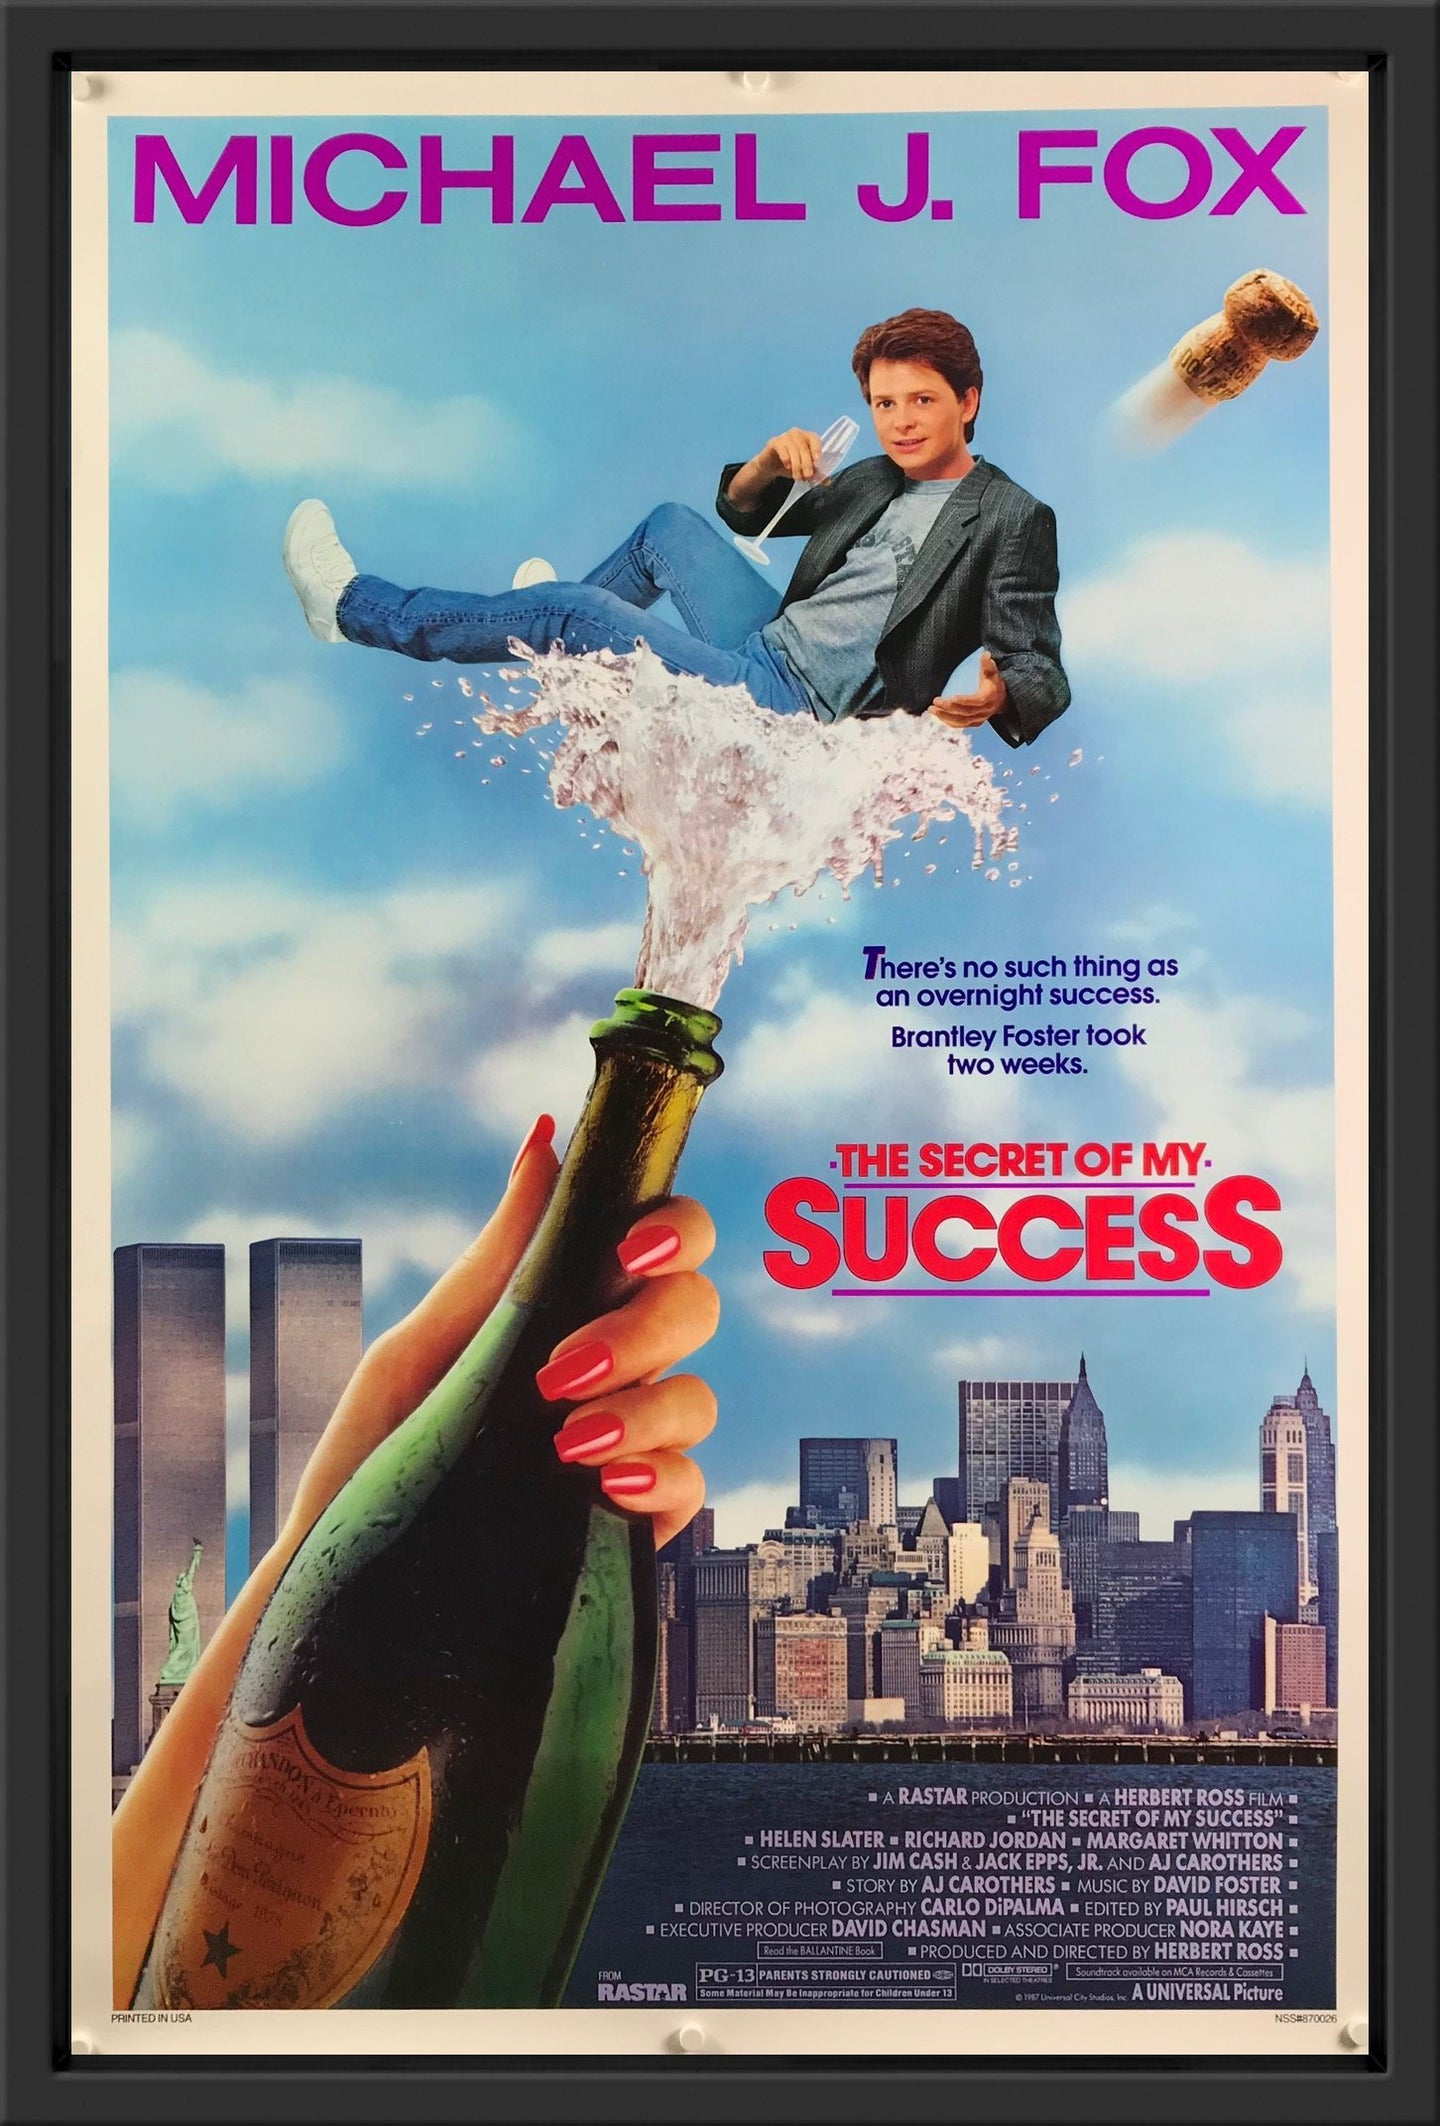 An original movie poster for the Michael J. Fox film The Secret of My Success